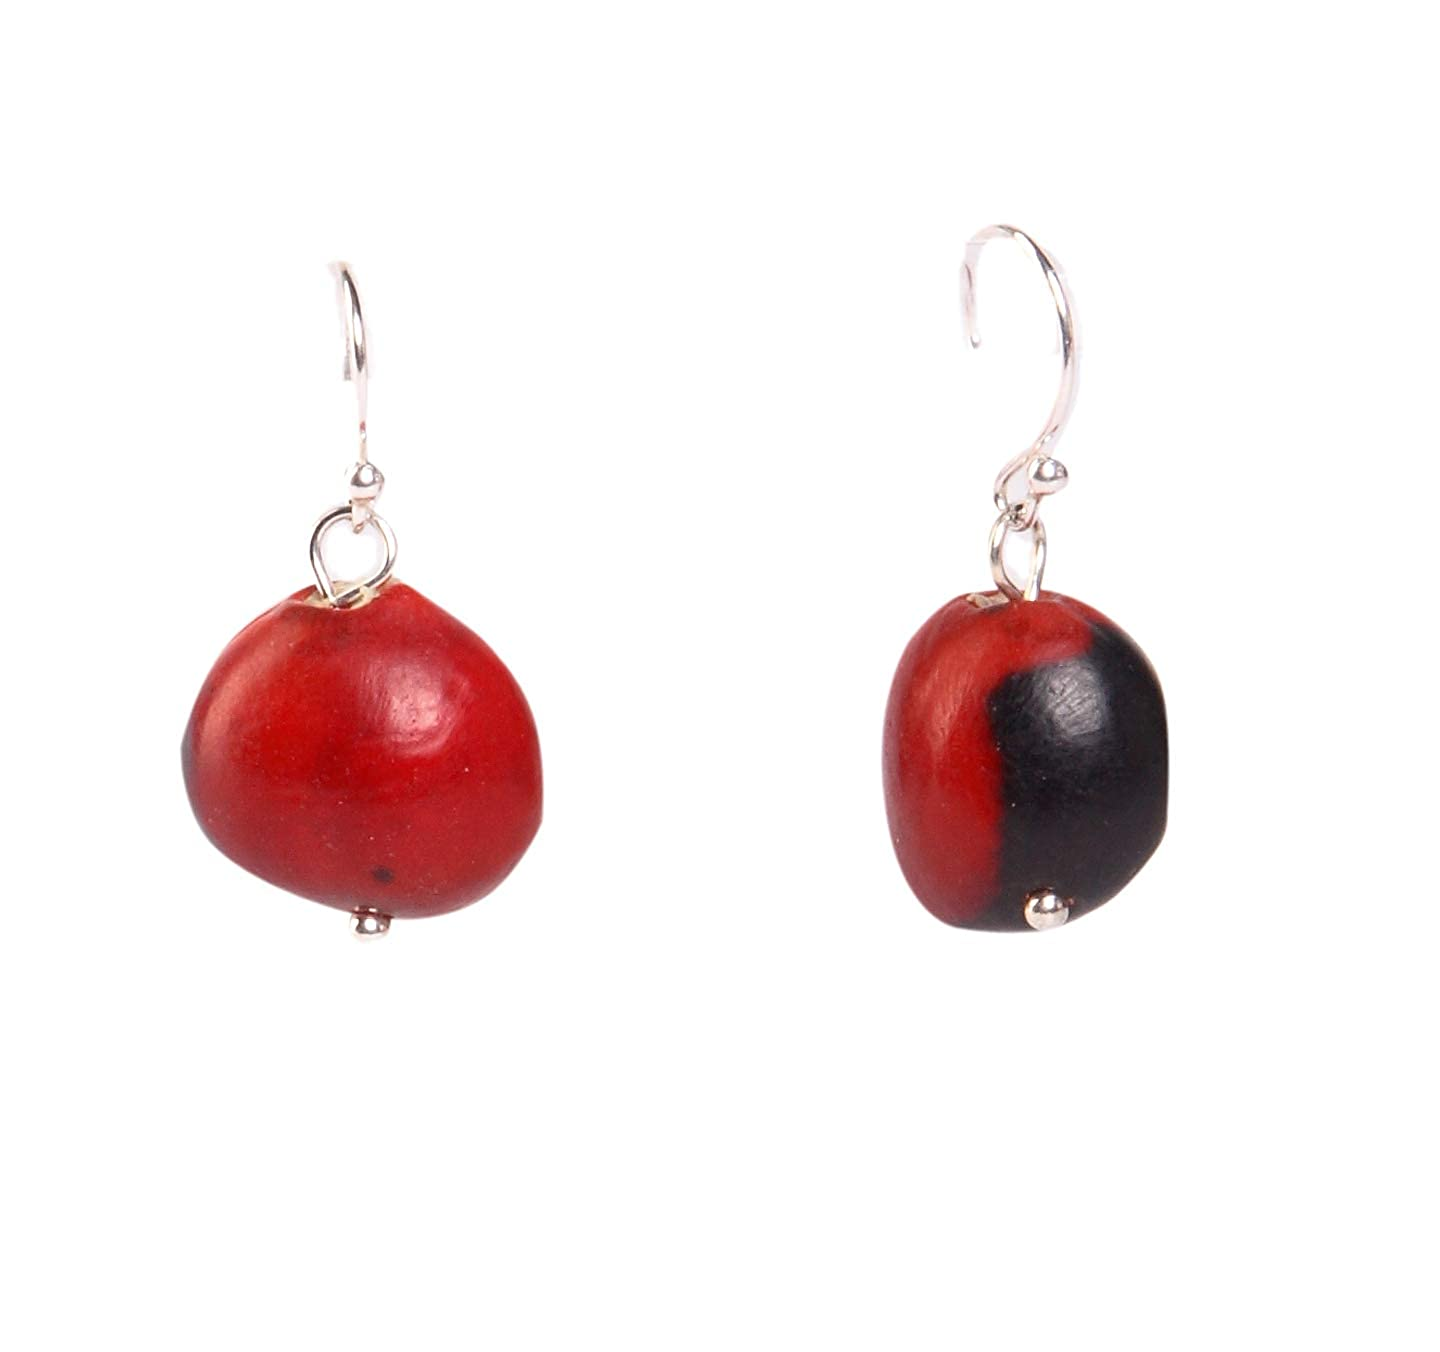 Dangle Earrings For Women Made With Red & Black Natural Huayruro Seed 12mm Beads by Evelyn Brooks Evelyn Brooks Designs E5023